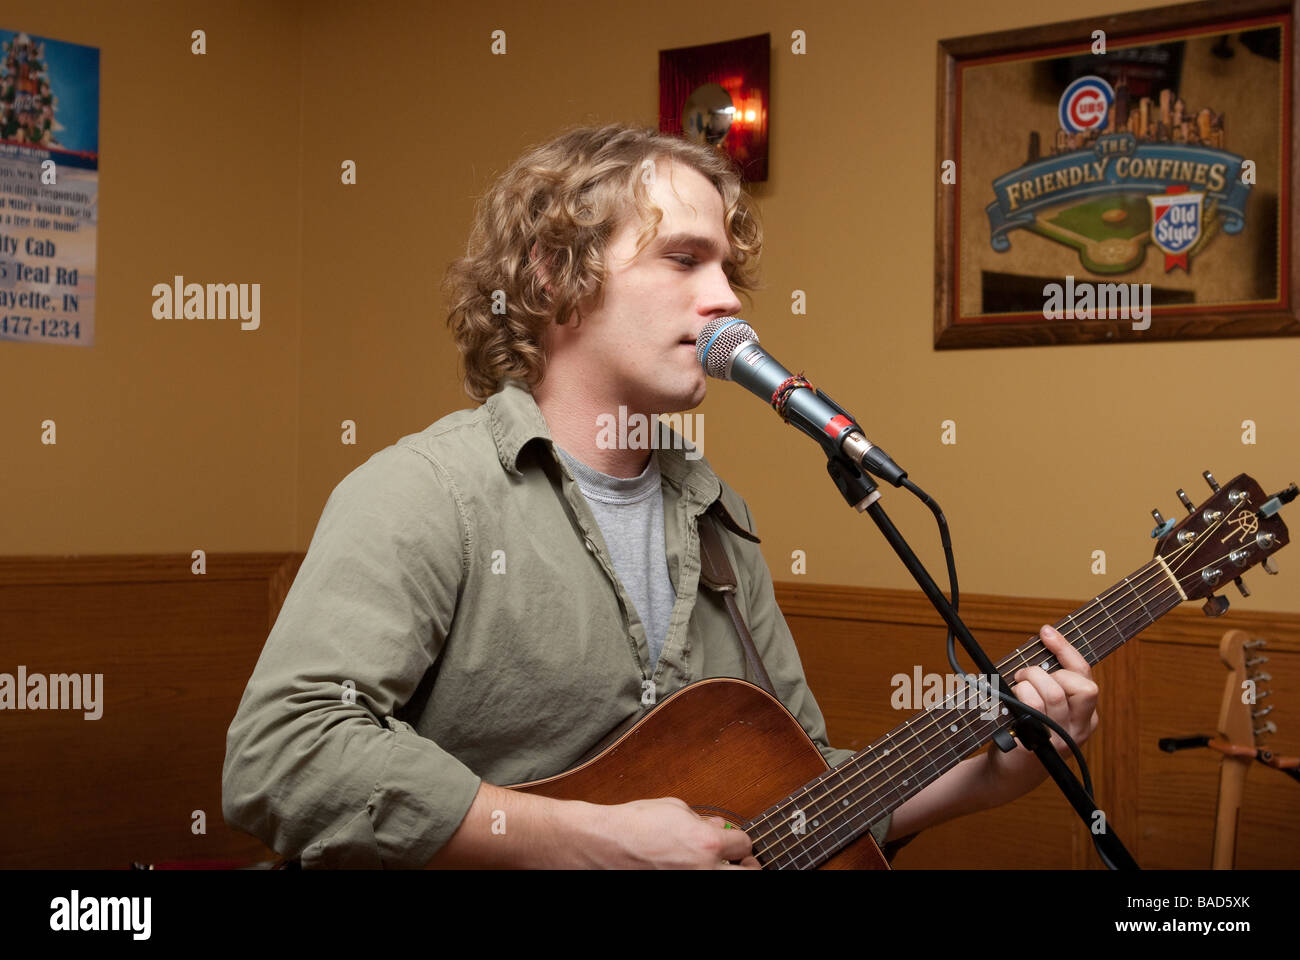 Guitarist / Singer Adam Gibson plays at a New Year's Even show in Lafayette, IN - Stock Image